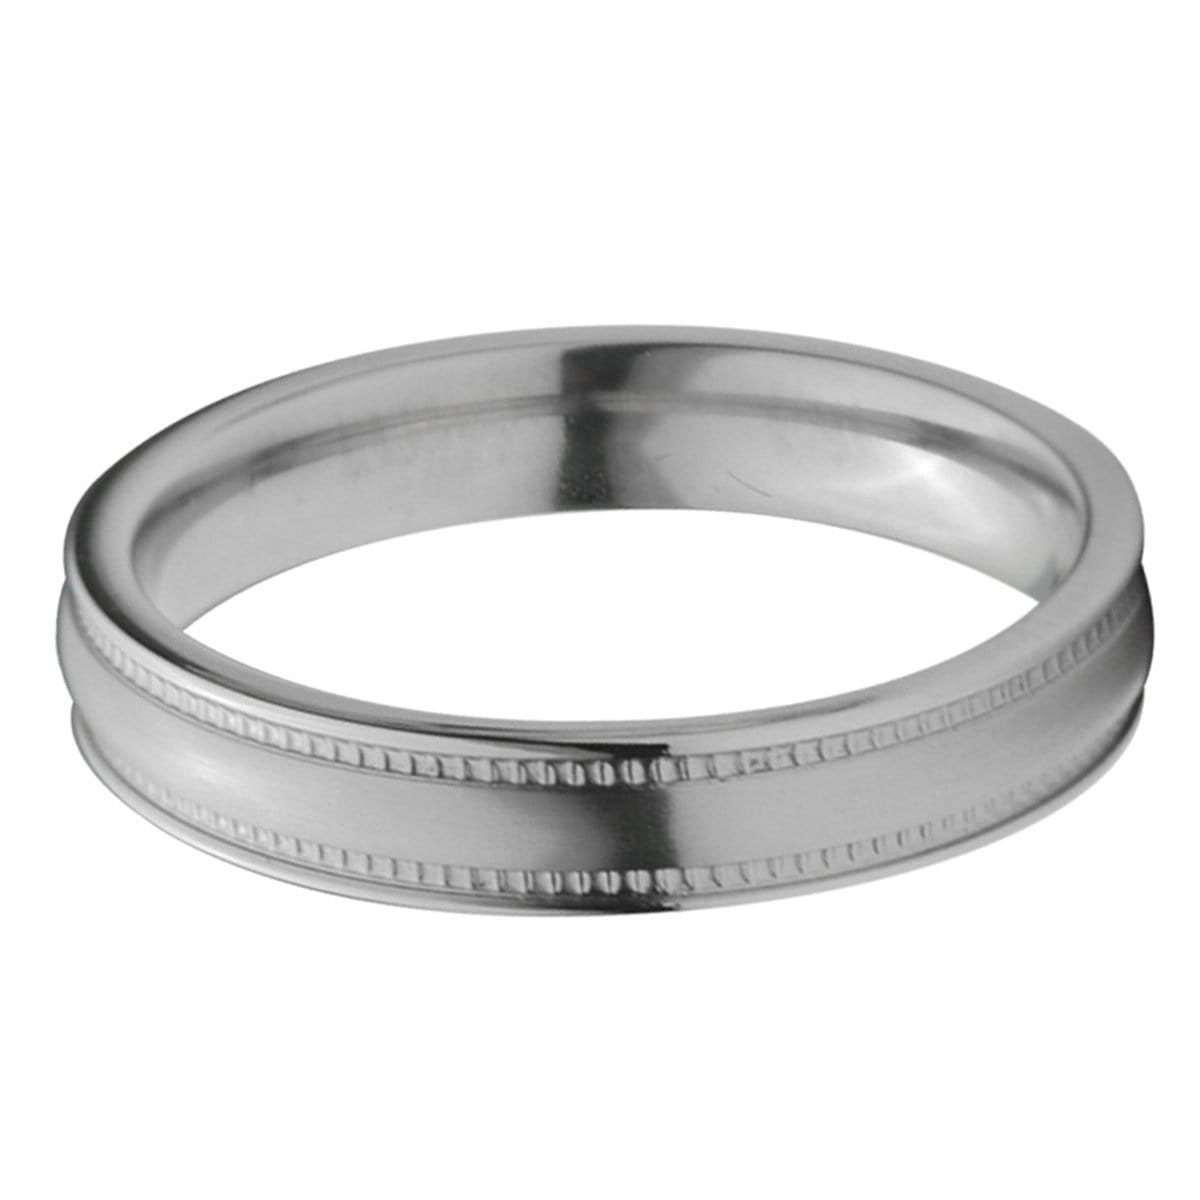 Silver Titanium 4mm Fancy Groove Border Band Rings 27